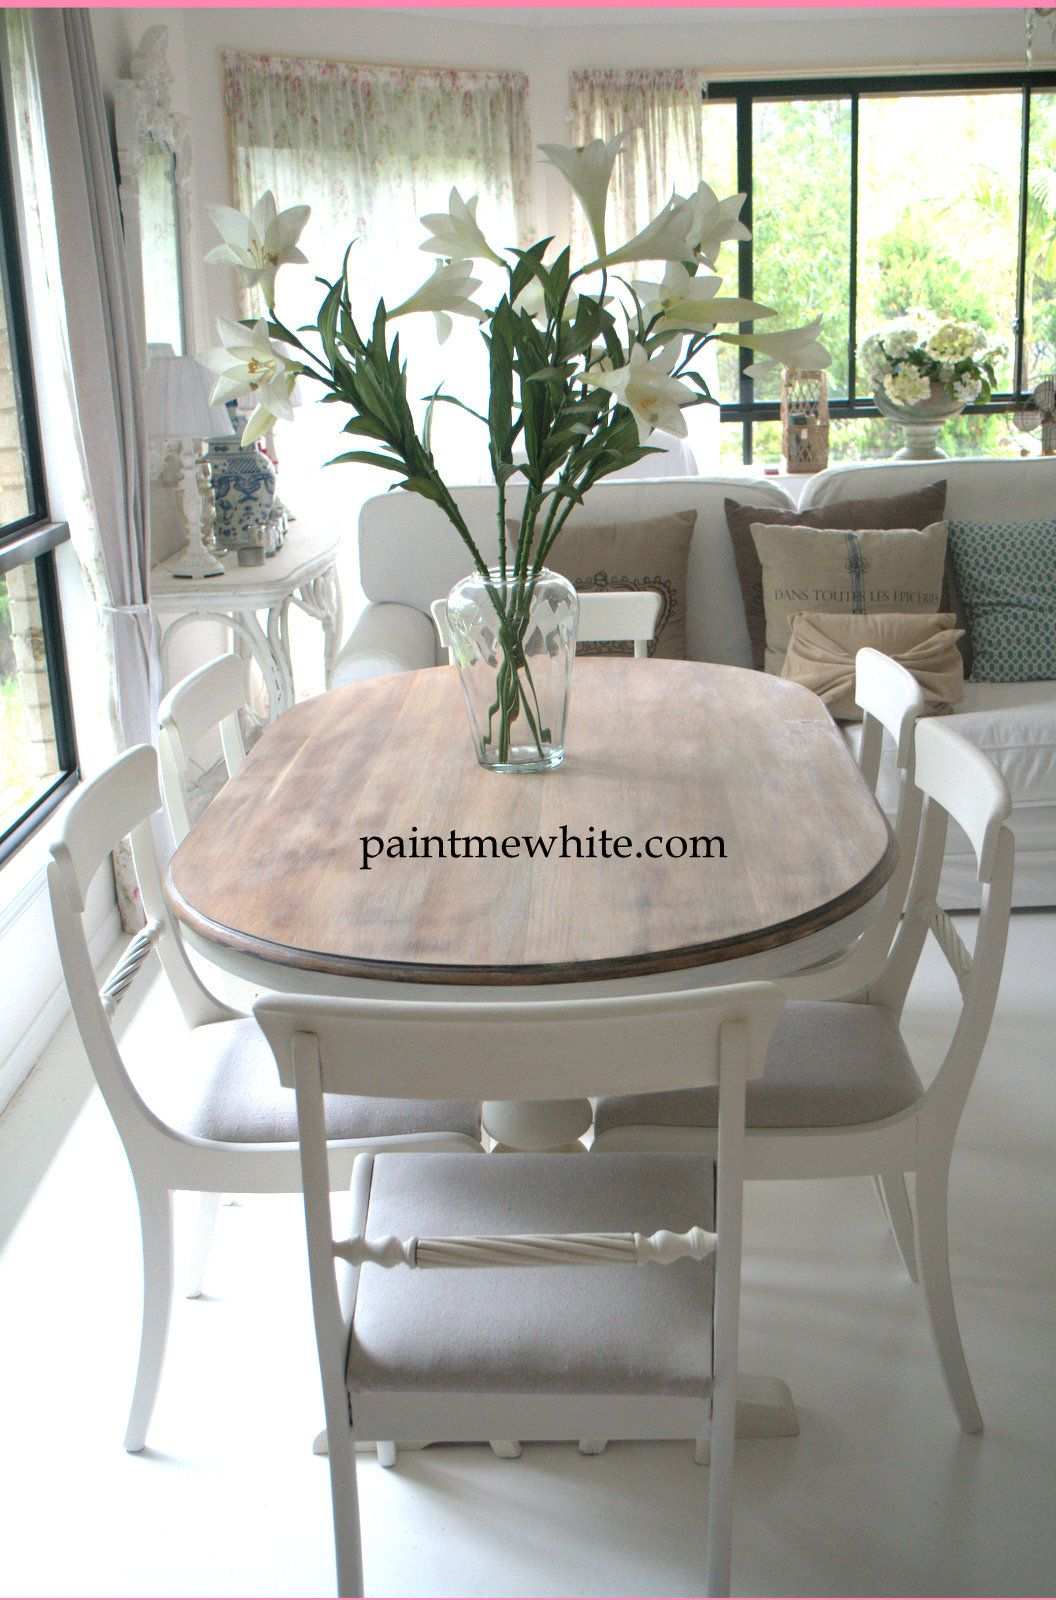 Paint Me White Dining Table Makeover Distressed Dining Table Dining Table Makeover Painted Kitchen Tables